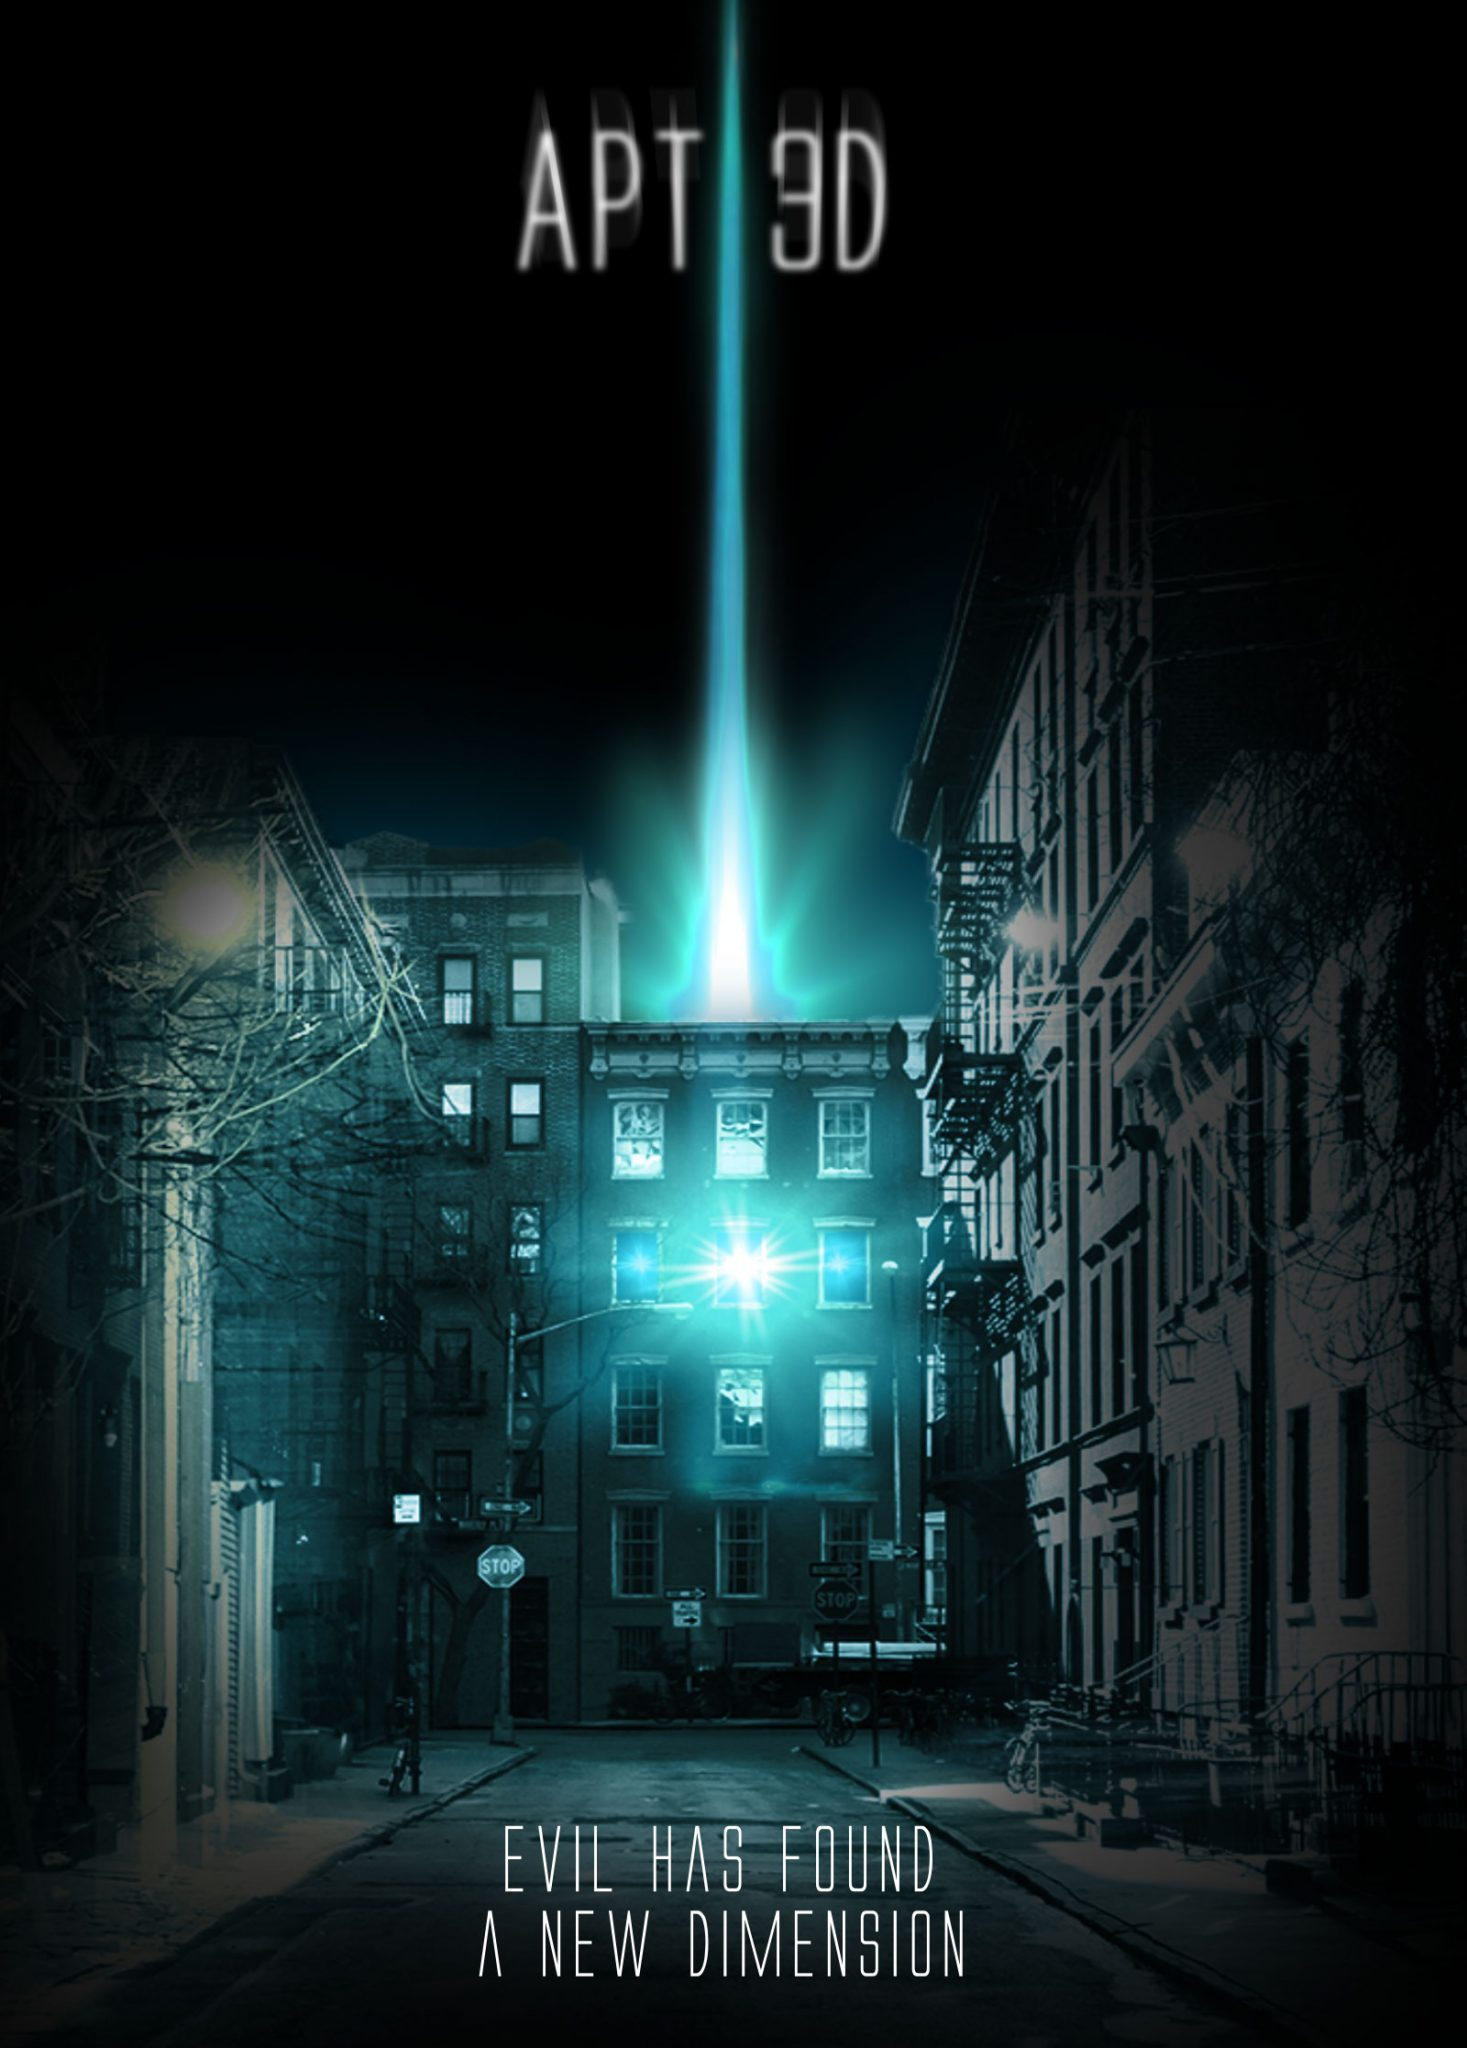 apartment 3D - Evil Finds a New Dimension in Apt 3D